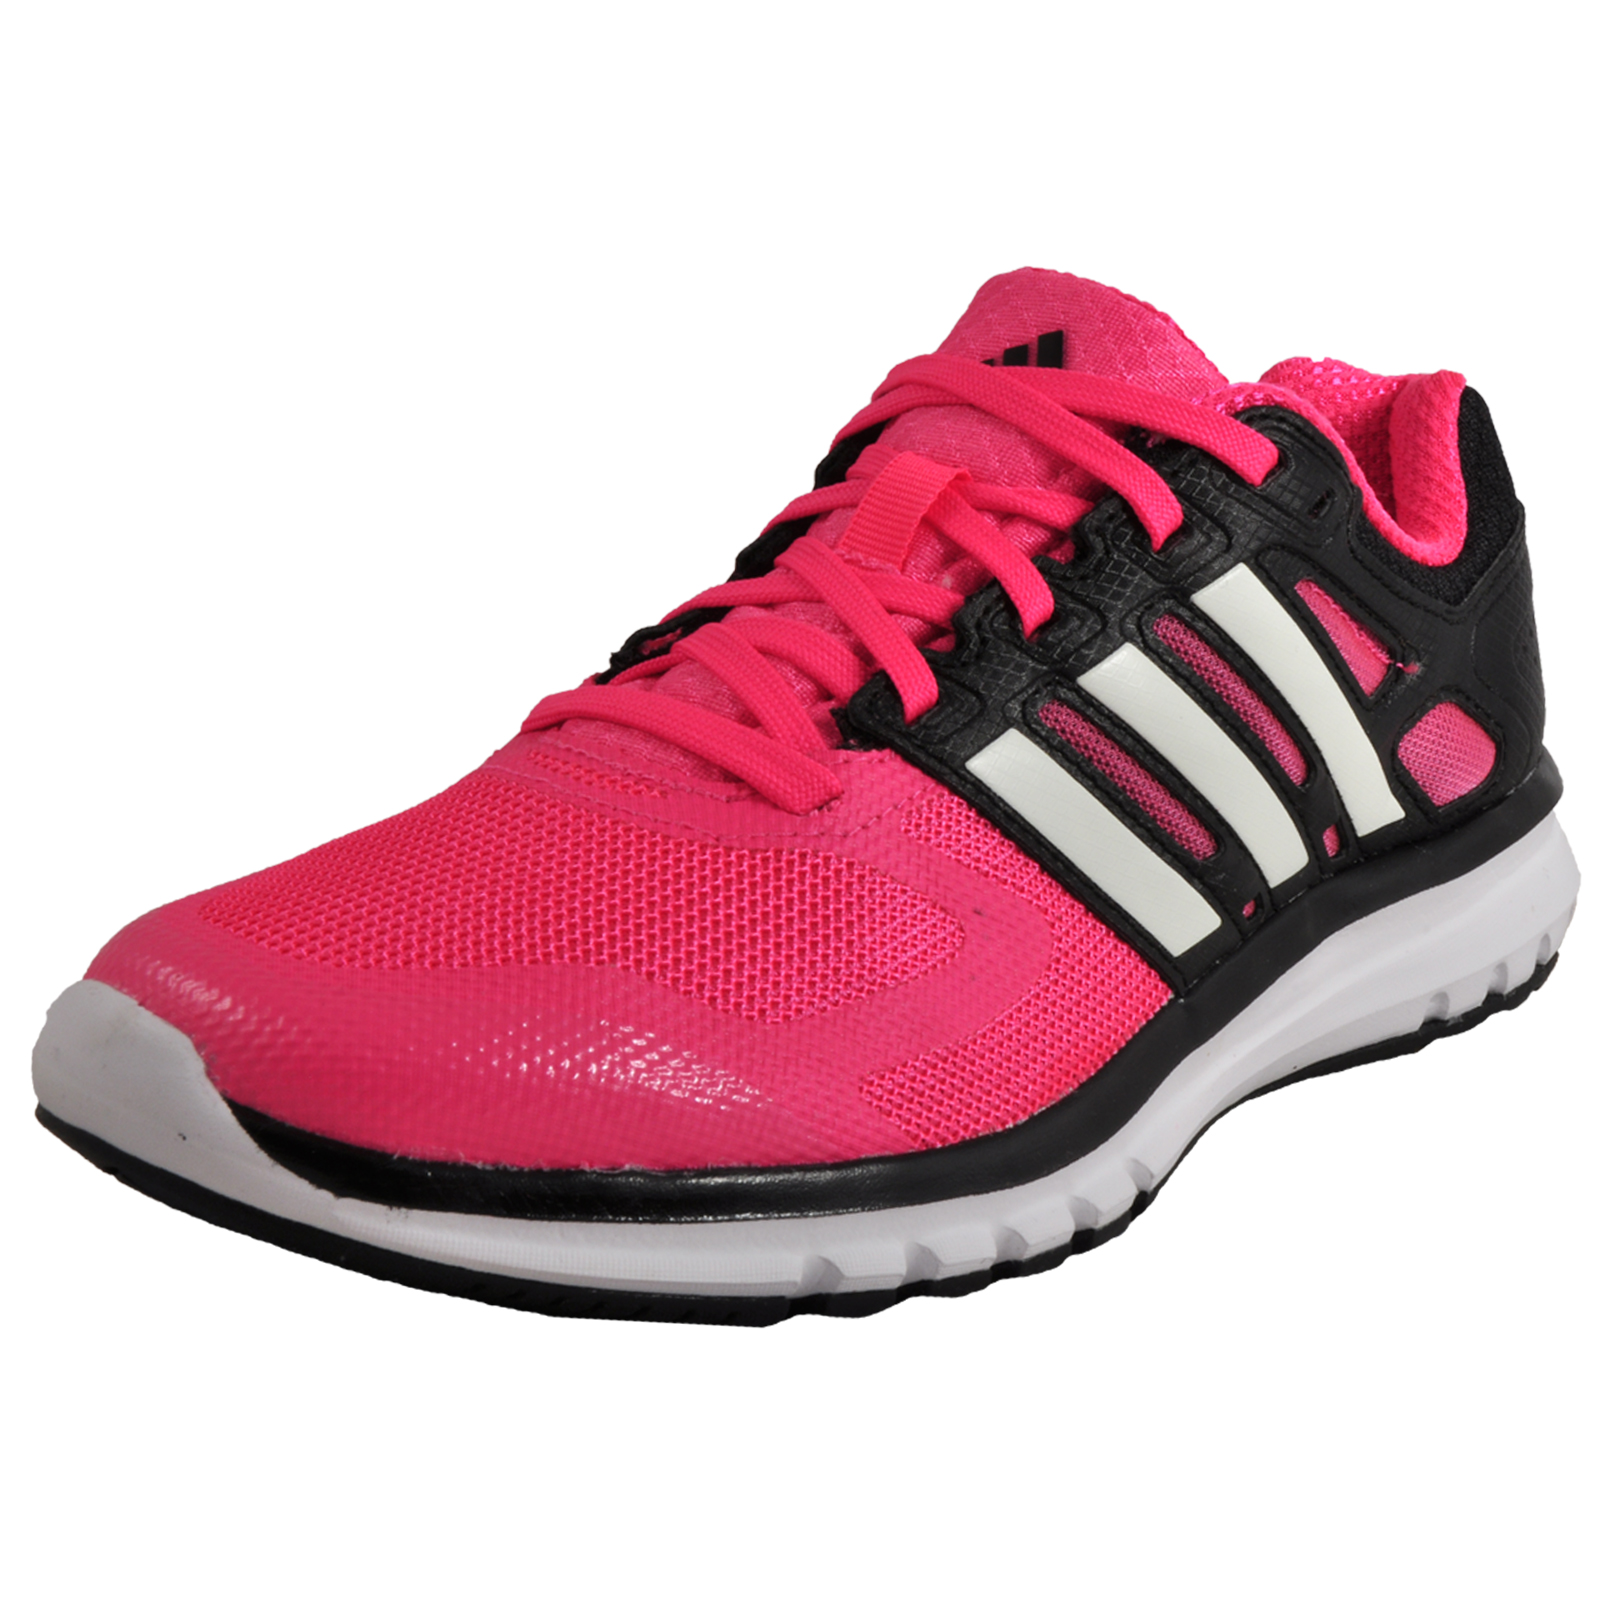 07f9fa468b15 Adidas Duramo Elite Womens Running Shoes Fitness Gym Workout Trainers Pink